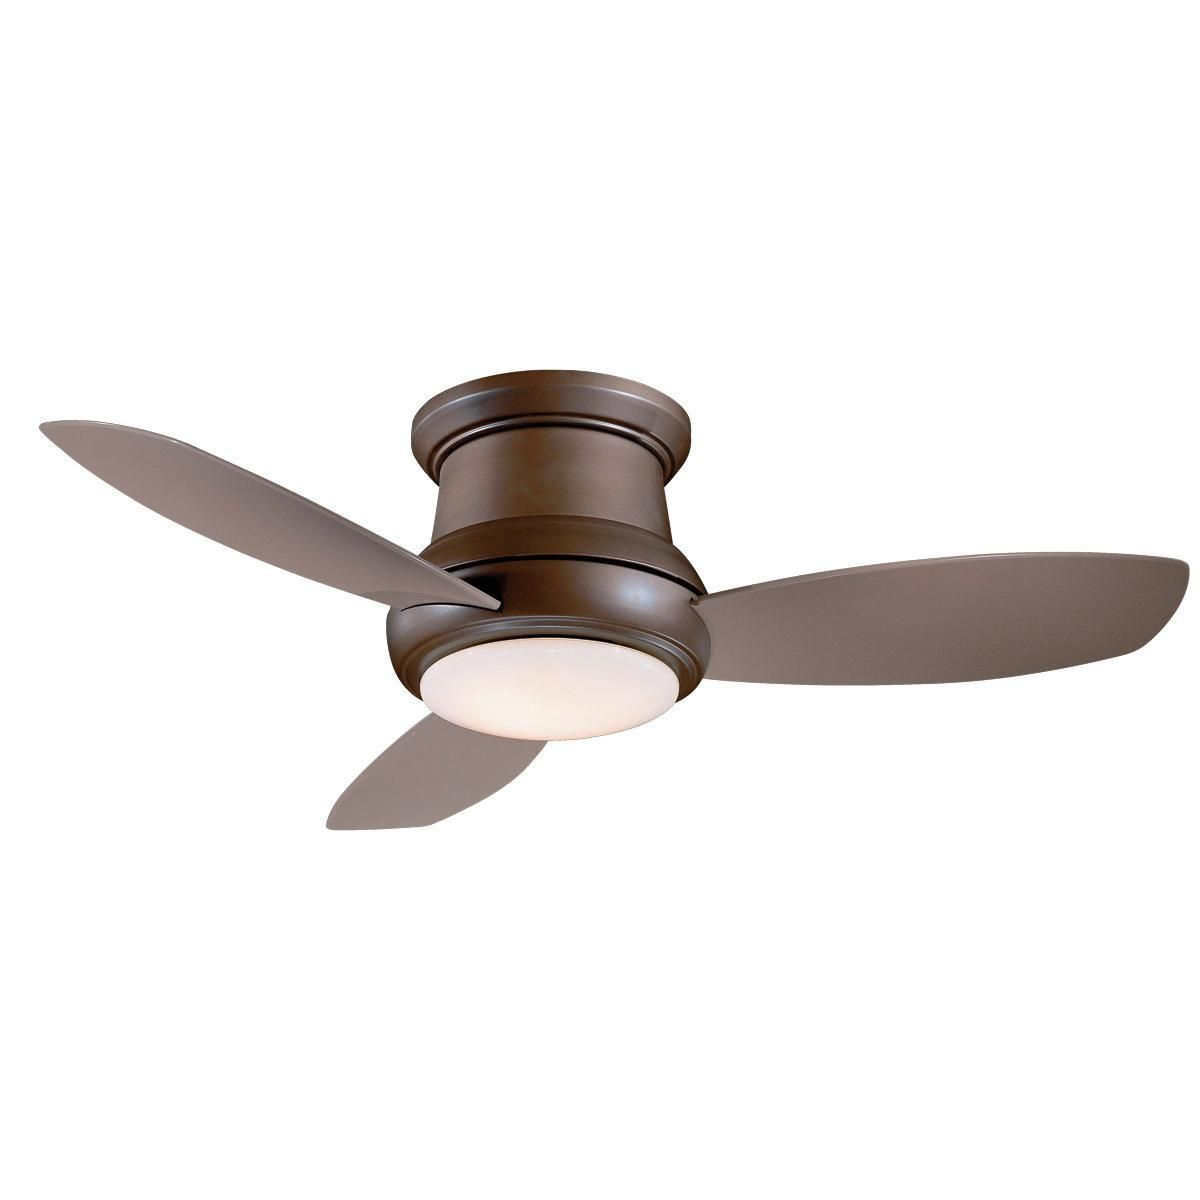 44 Low Ceiling Scoop Fan Possibly For The Master Because Of The